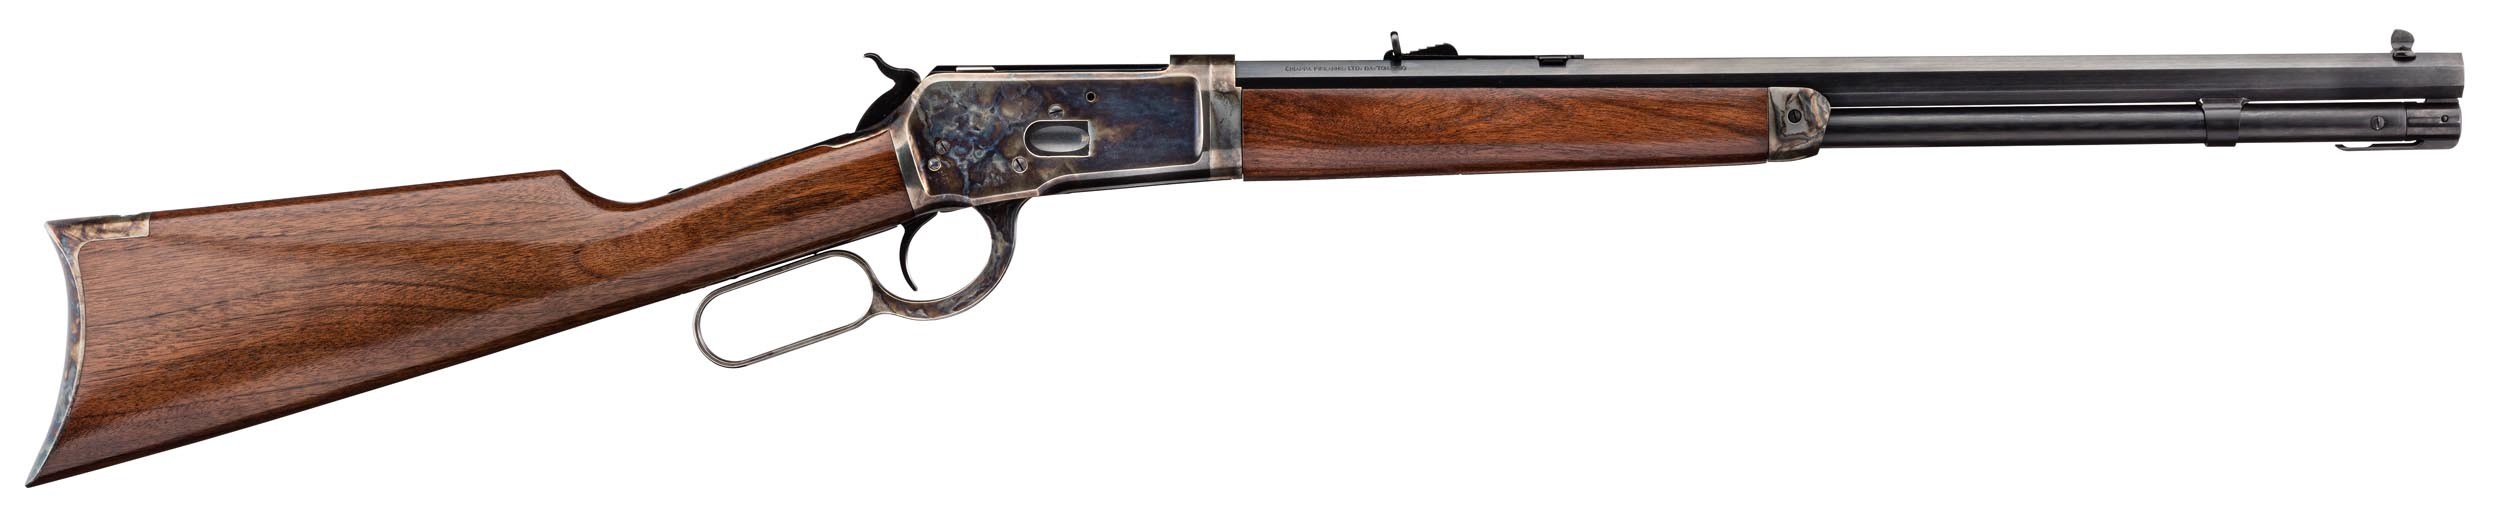 WE172-6 Chiappa 1892 Lever Action take down - Canon Octogonal - WE171